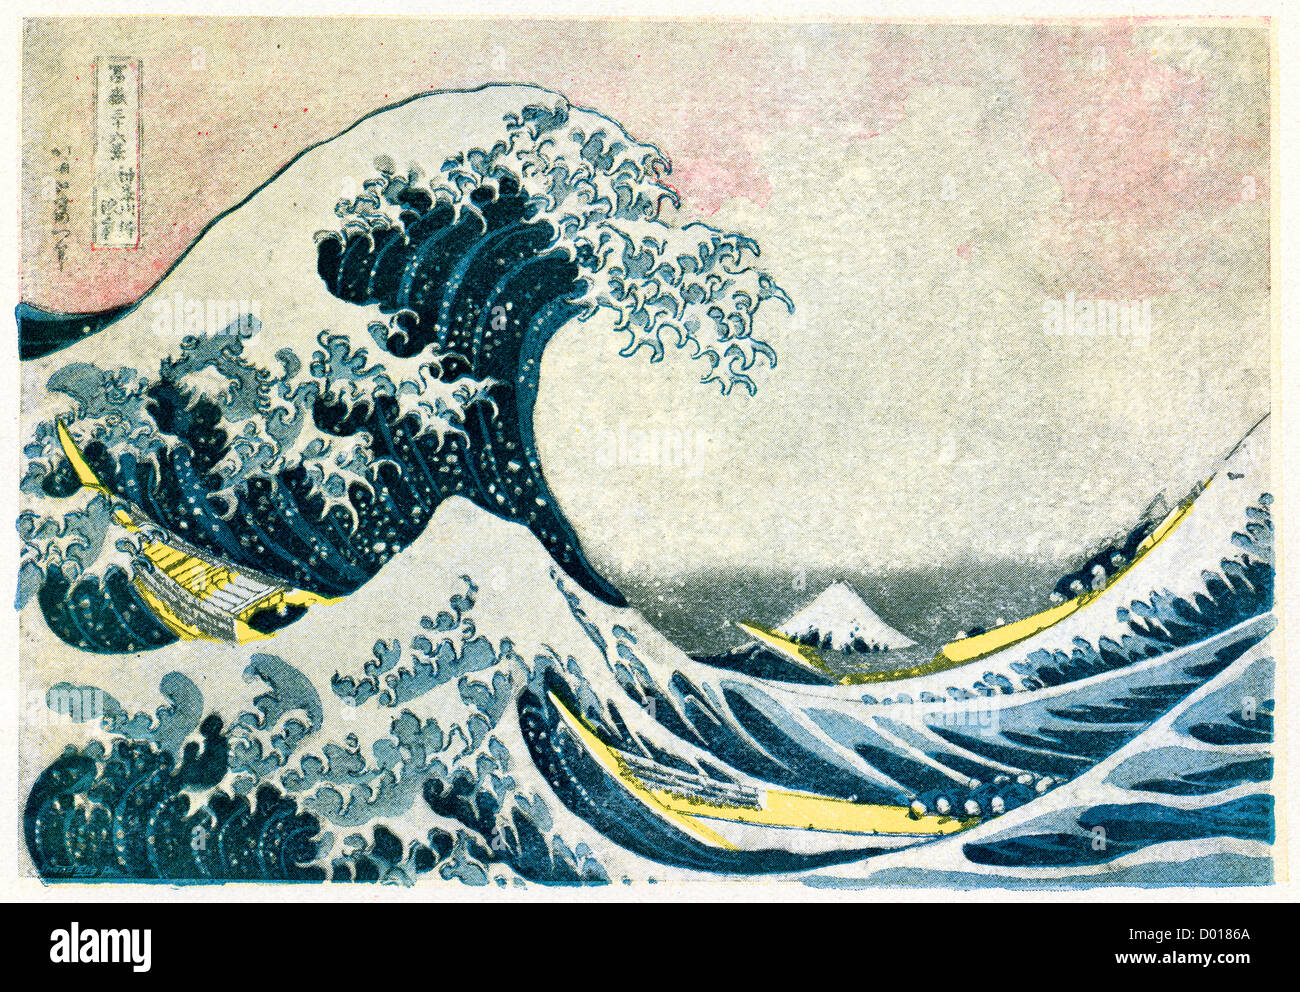 The Great Wave off Kanagawa, also known as The Great Wave or simply The Wave,  a woodblock print by Hokusai - Stock Image